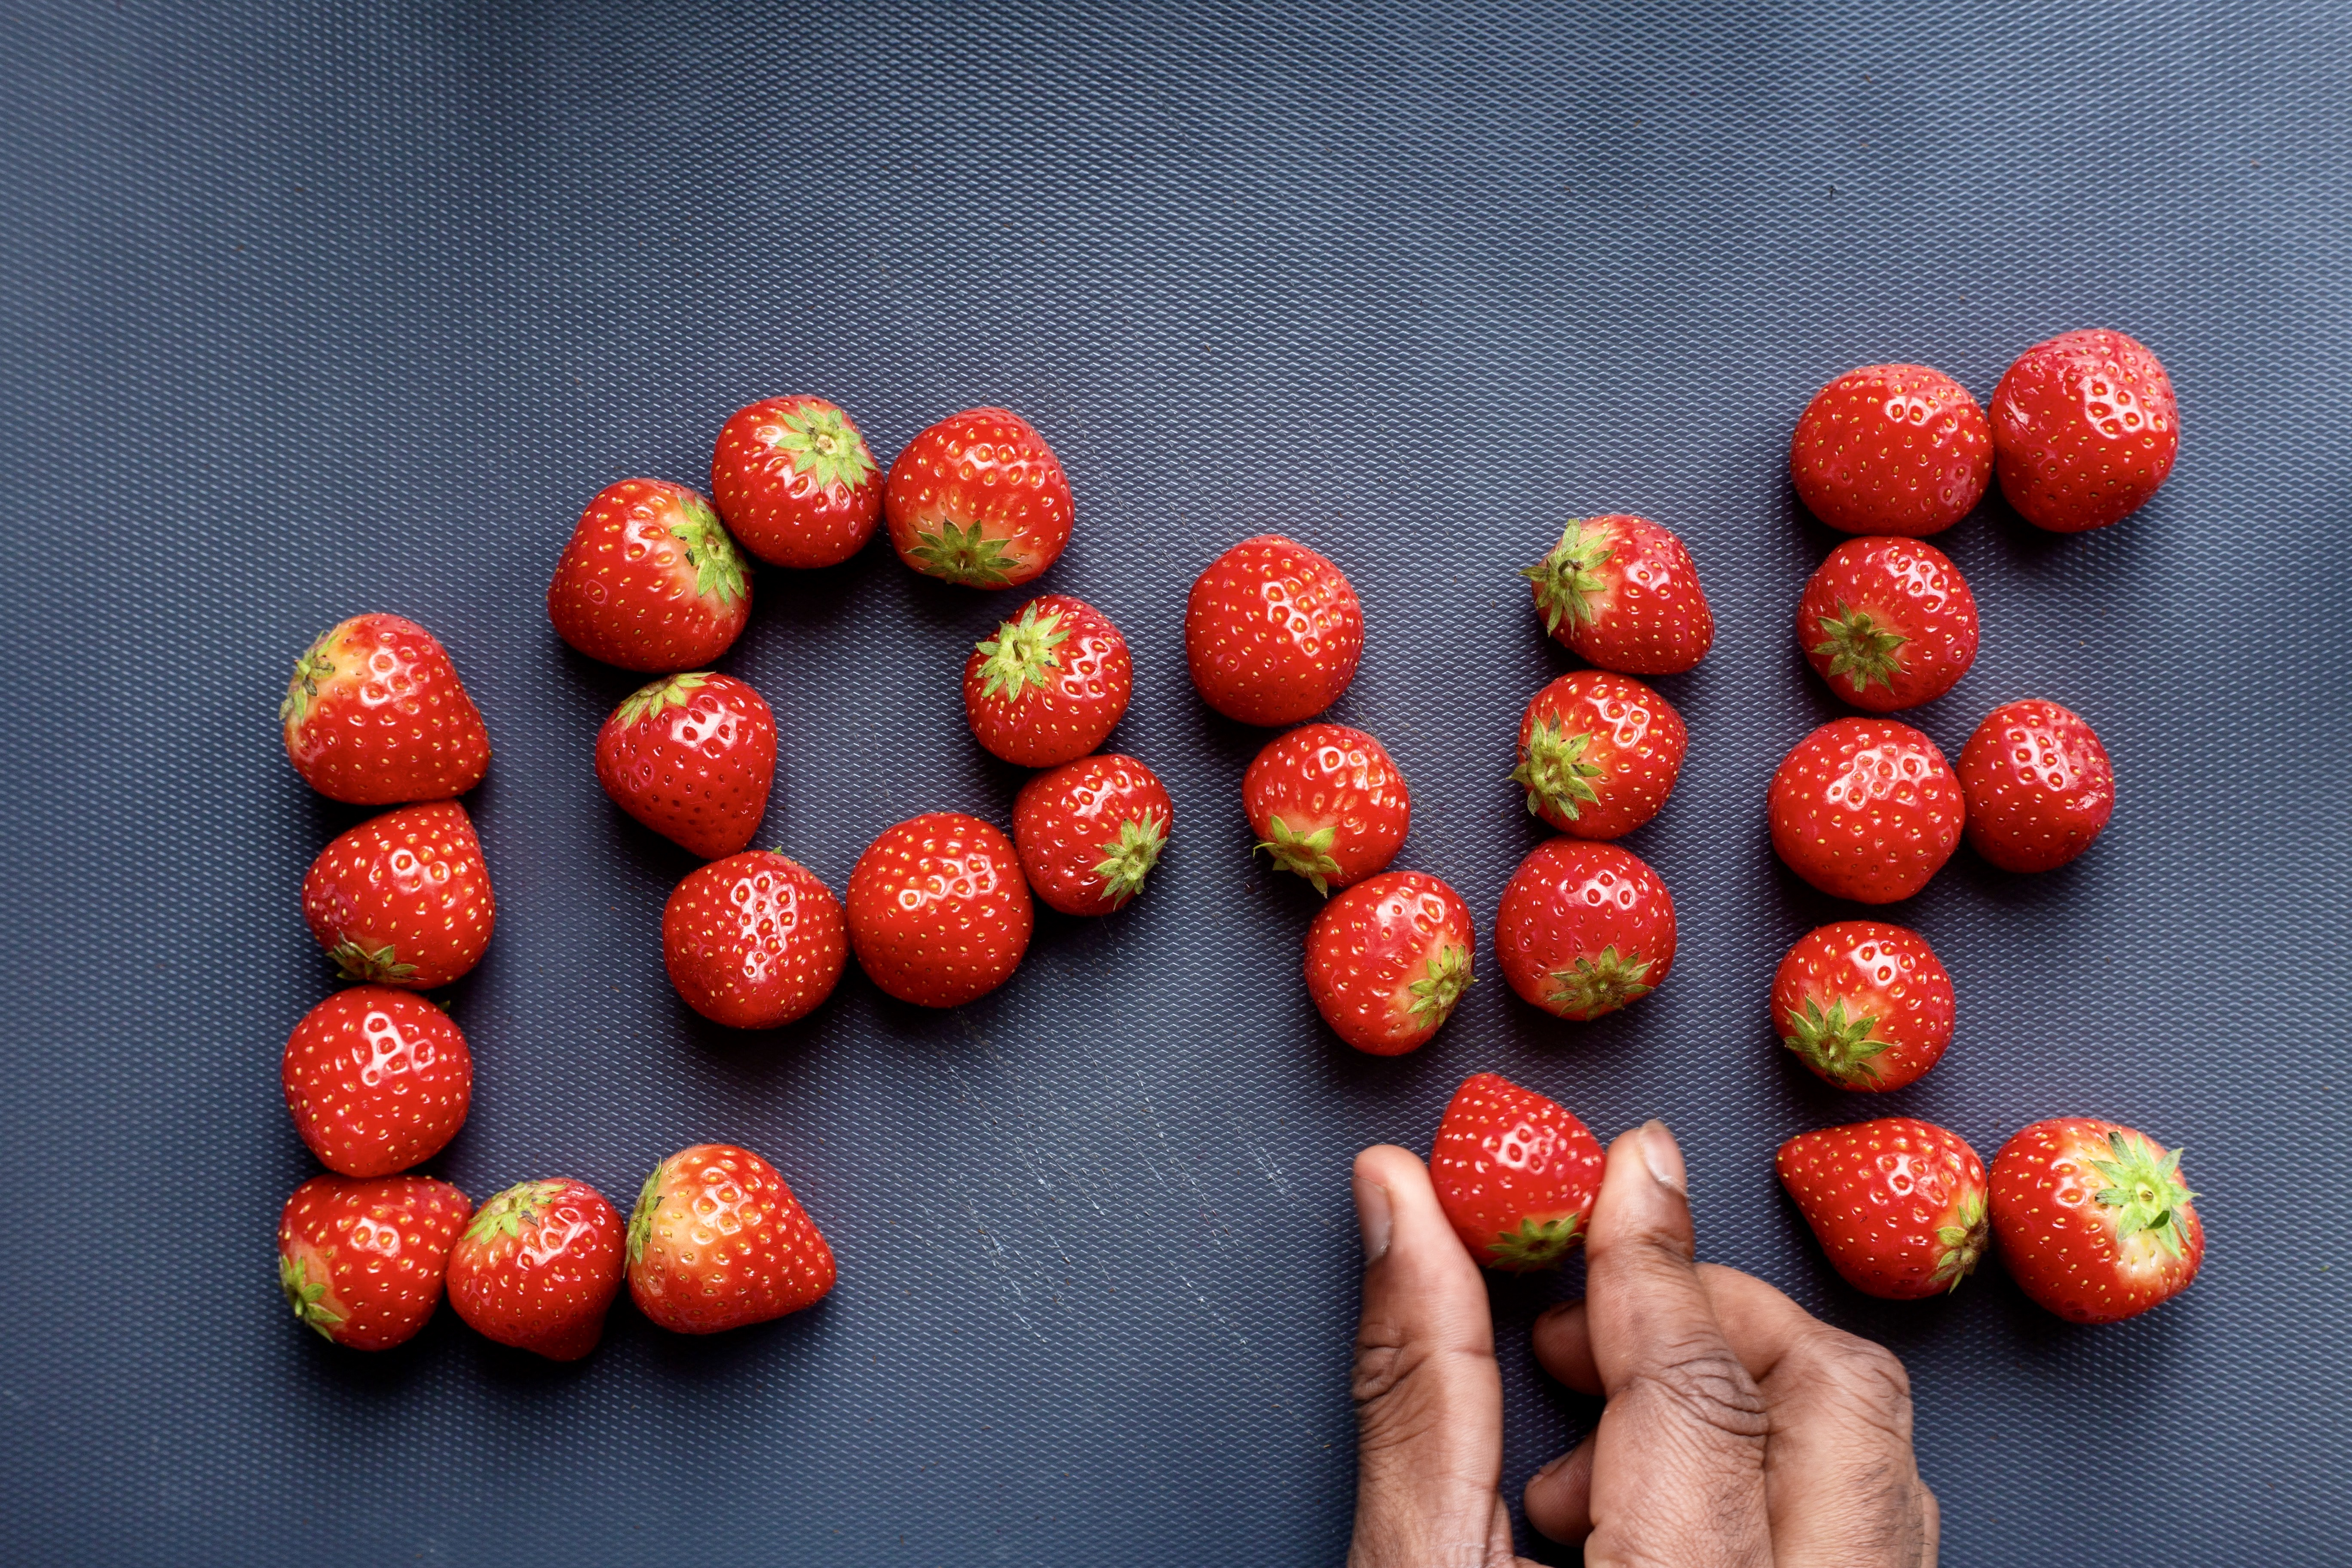 Strawberries help the body to digest a variety of vitamins.